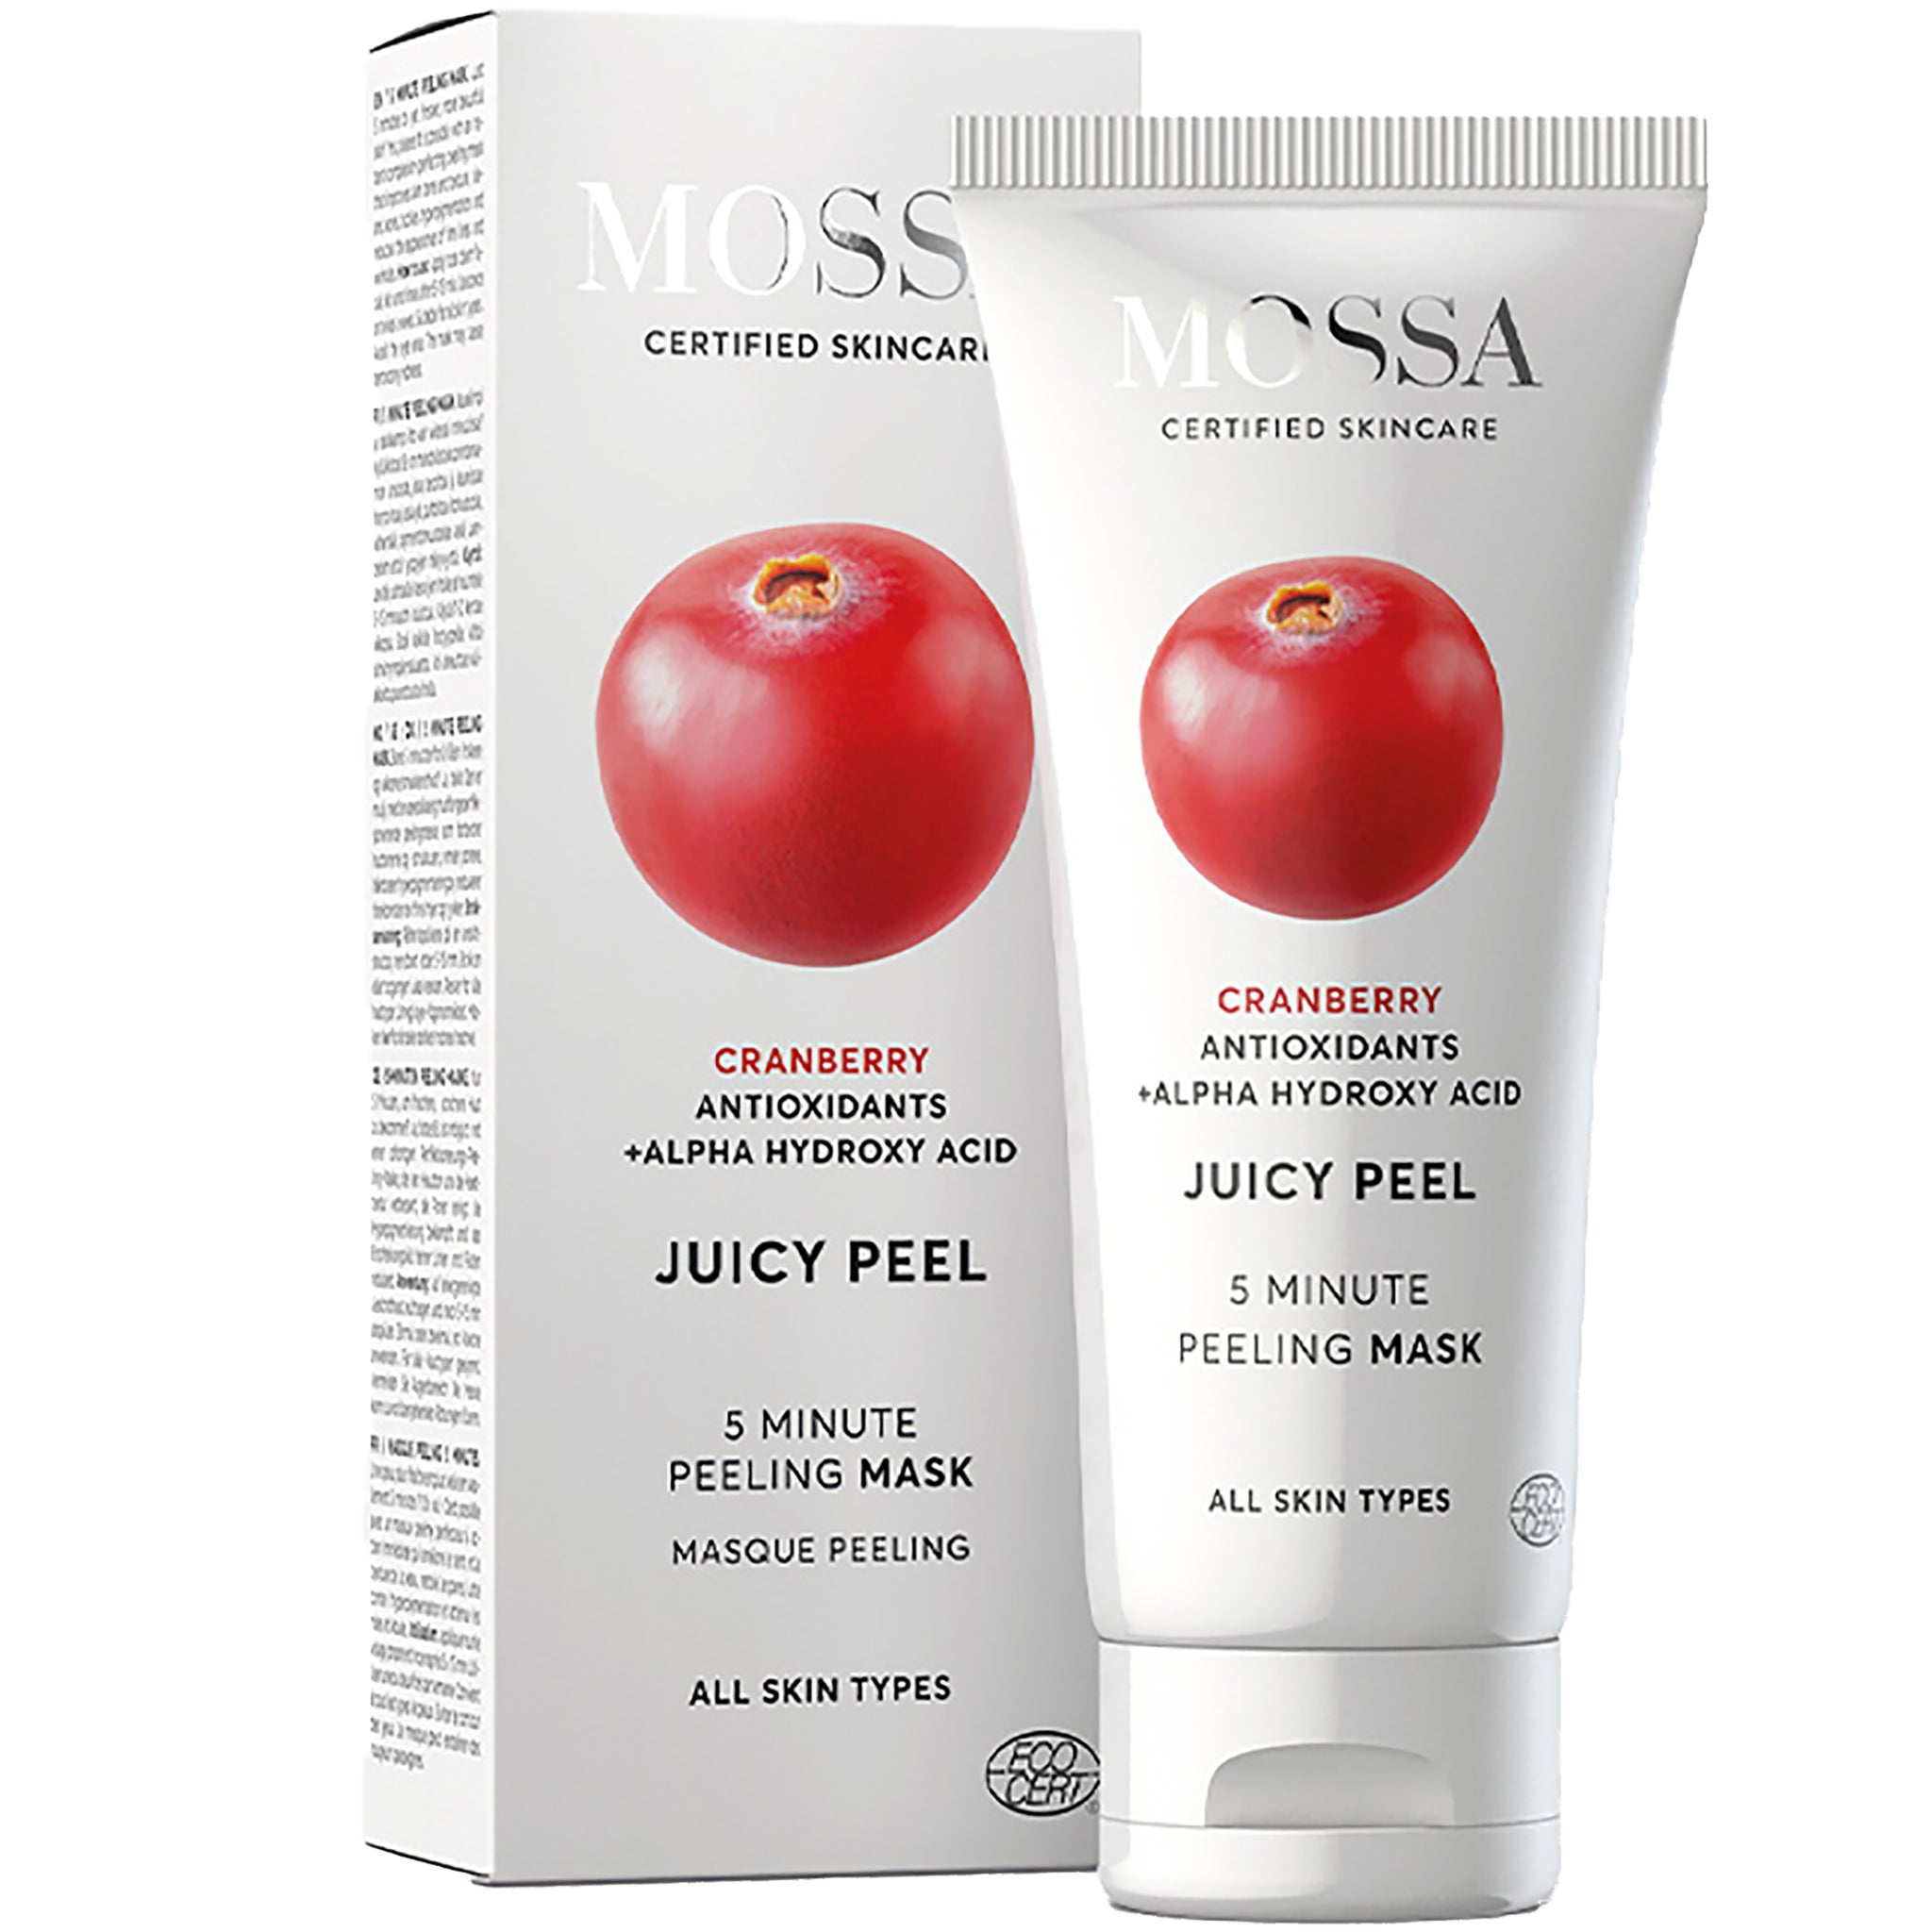 Juicy Peel - 5 Minute Peeling Mask